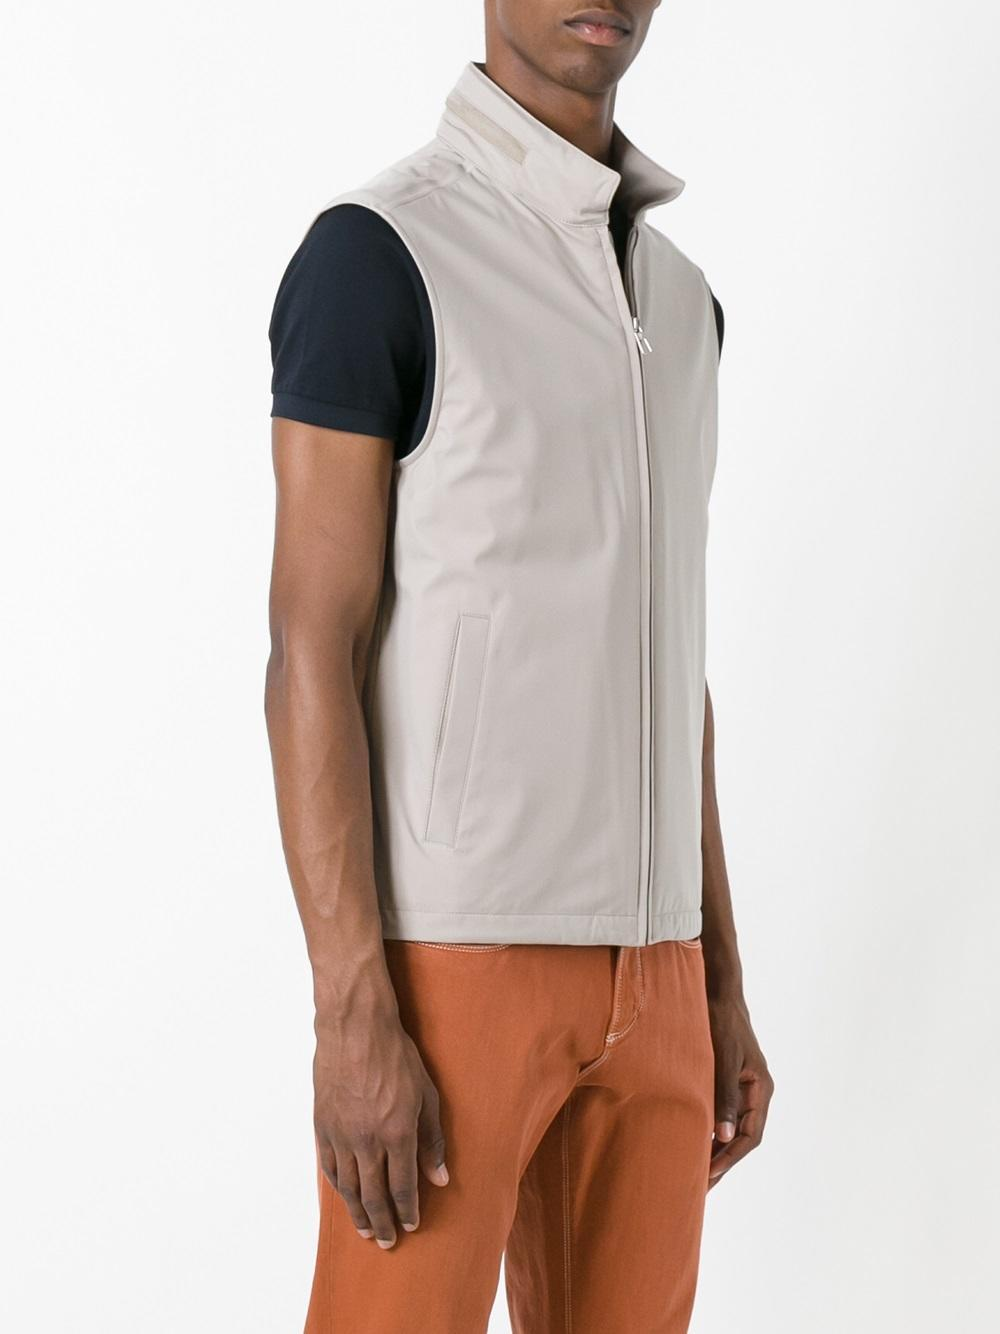 Loro Piana Synthetic Bandon Vest for Men